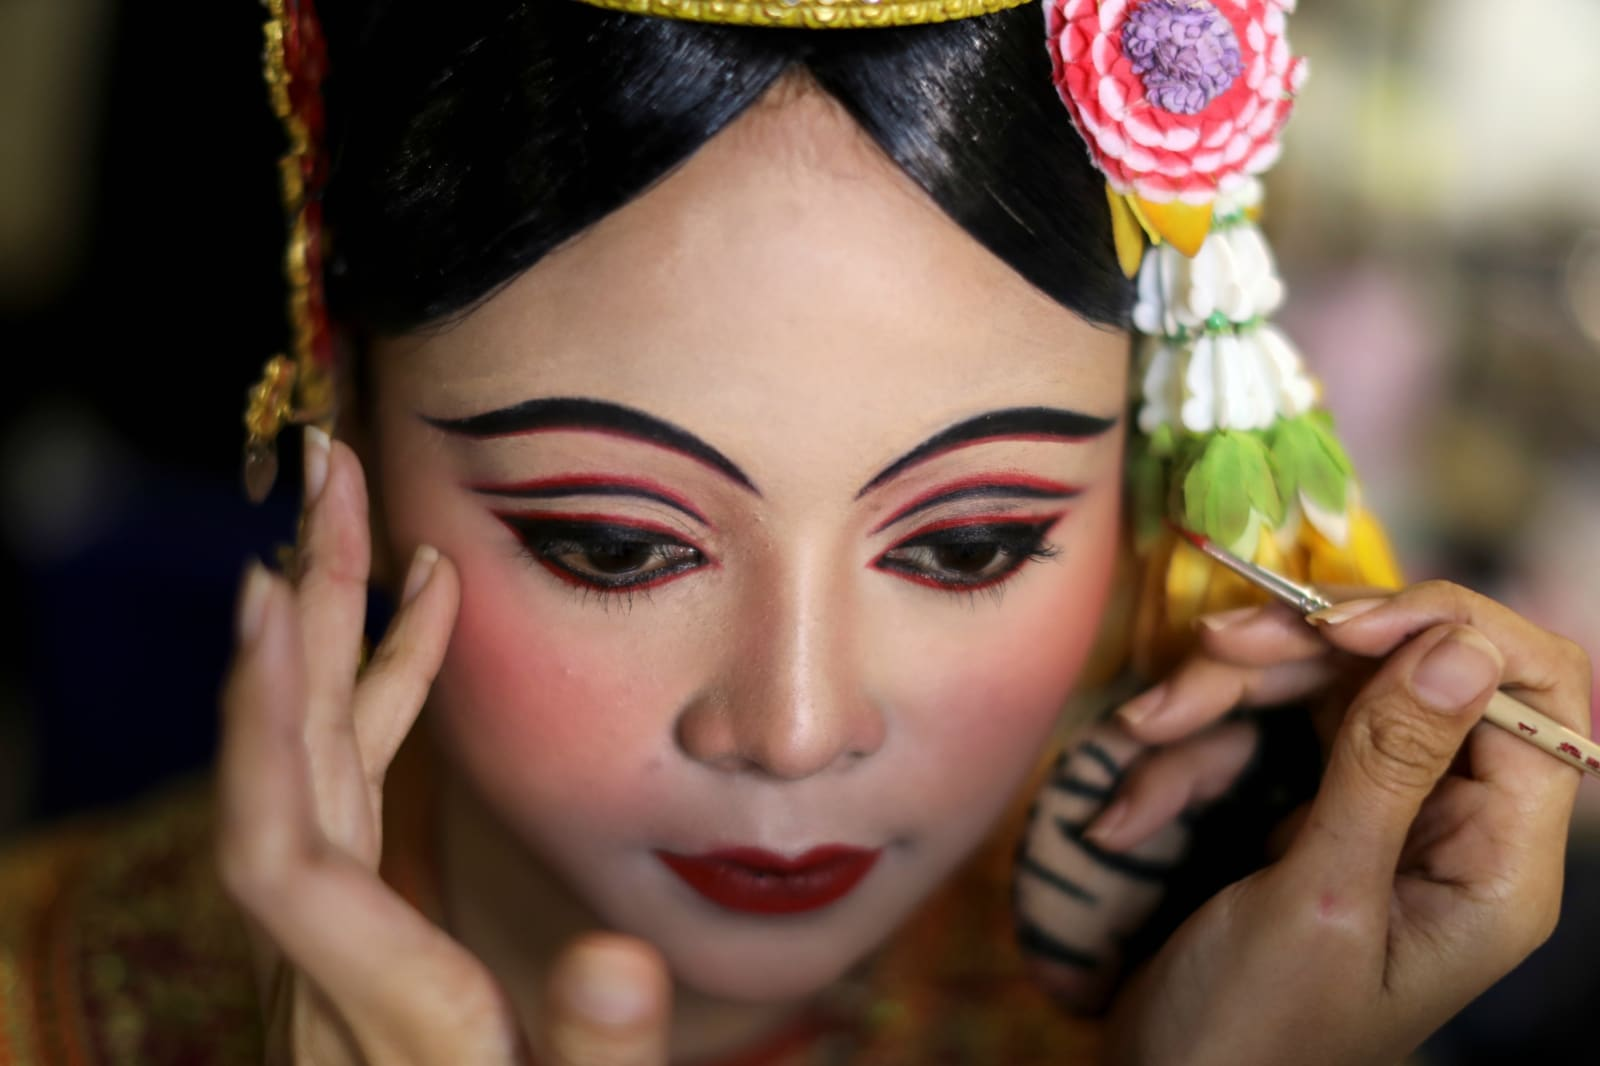 Dancers get ready backstage before a performance of masked theater known as Lakhon Khol which was recently listed by UNESCO, the United Nations' cultural agency, as an intangible cultural heritage, along with neighbouring Thailand's version of the dance, known as Khon at the Thailand Cultural Centre in Bangkok, Thailand November 7, 2018. REUTERS/Jorge Silva